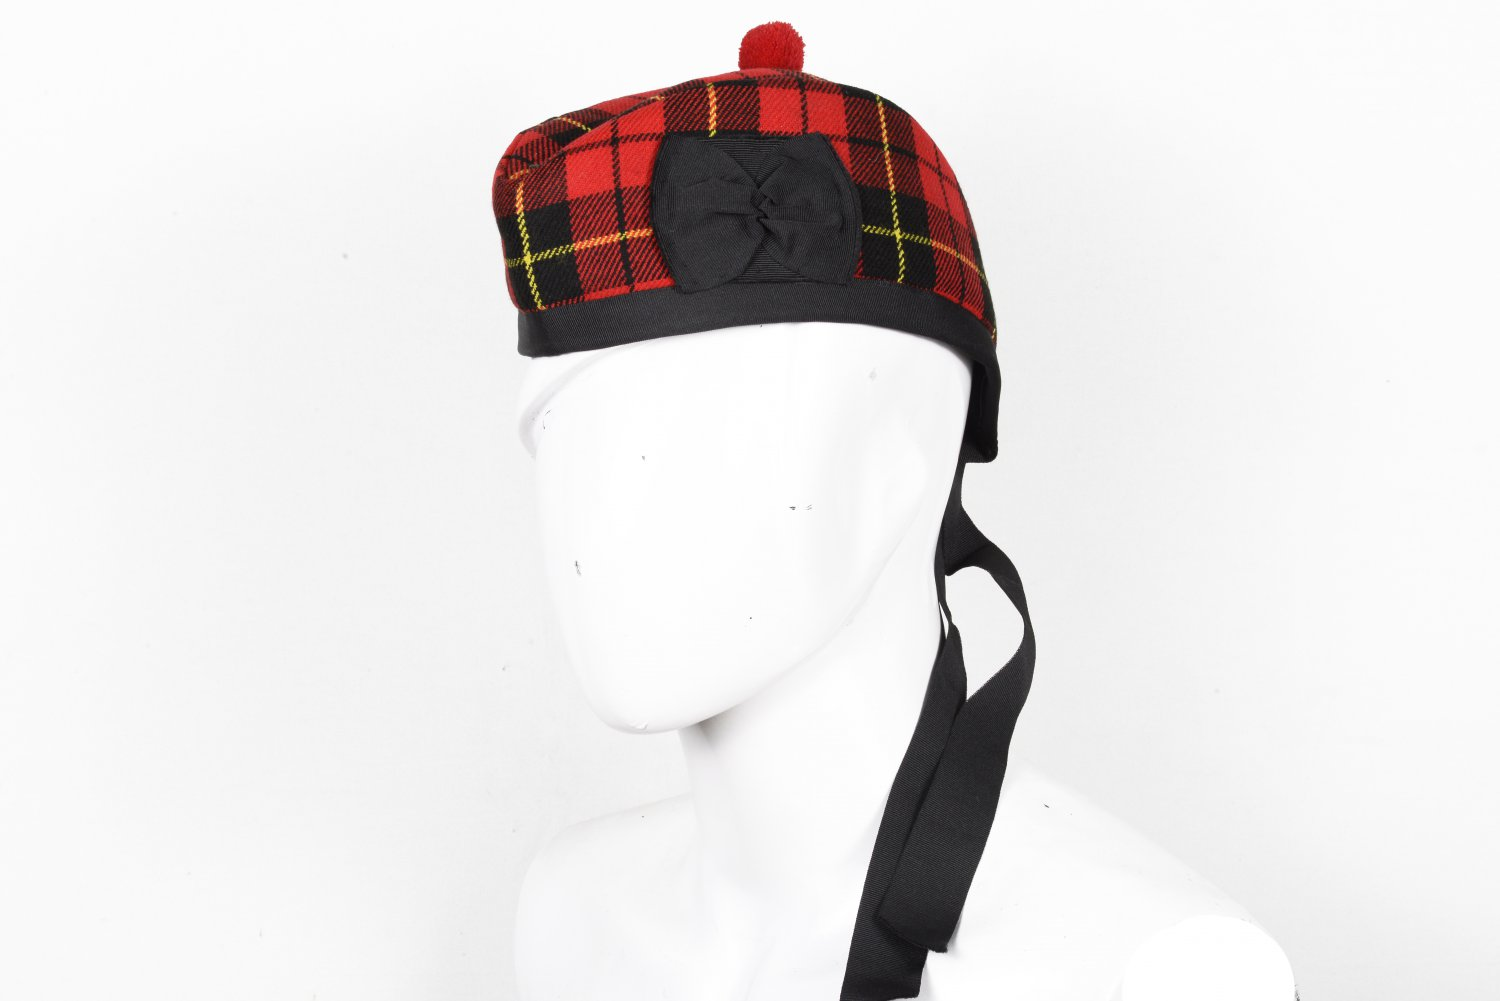 Scottish GLENGARRY Cap Traditional Military Piper Hat KILT Cap Clan Wallace Size 64 cm